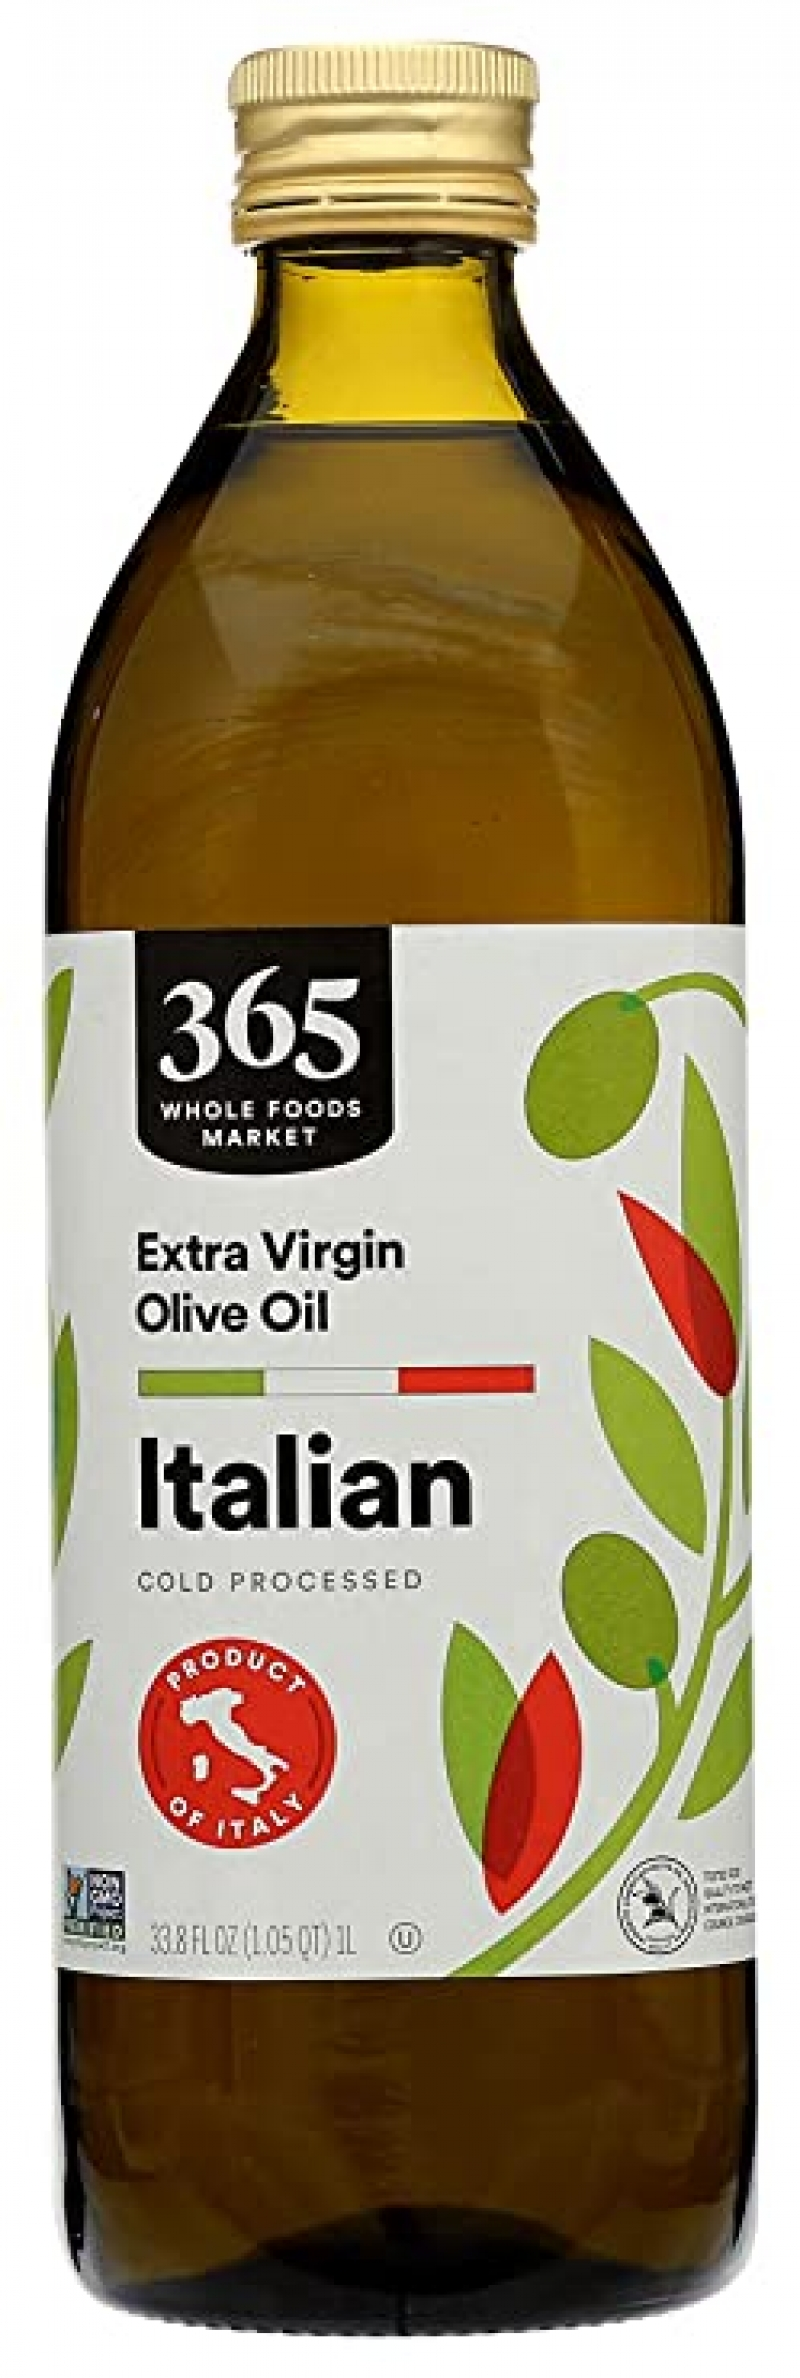 ihocon: 365 by Whole Foods Market, Cold Processed Extra Virgin Olive Oil, Italian, 33.8 Fl Oz 365  冷壓特級初榨橄欖油